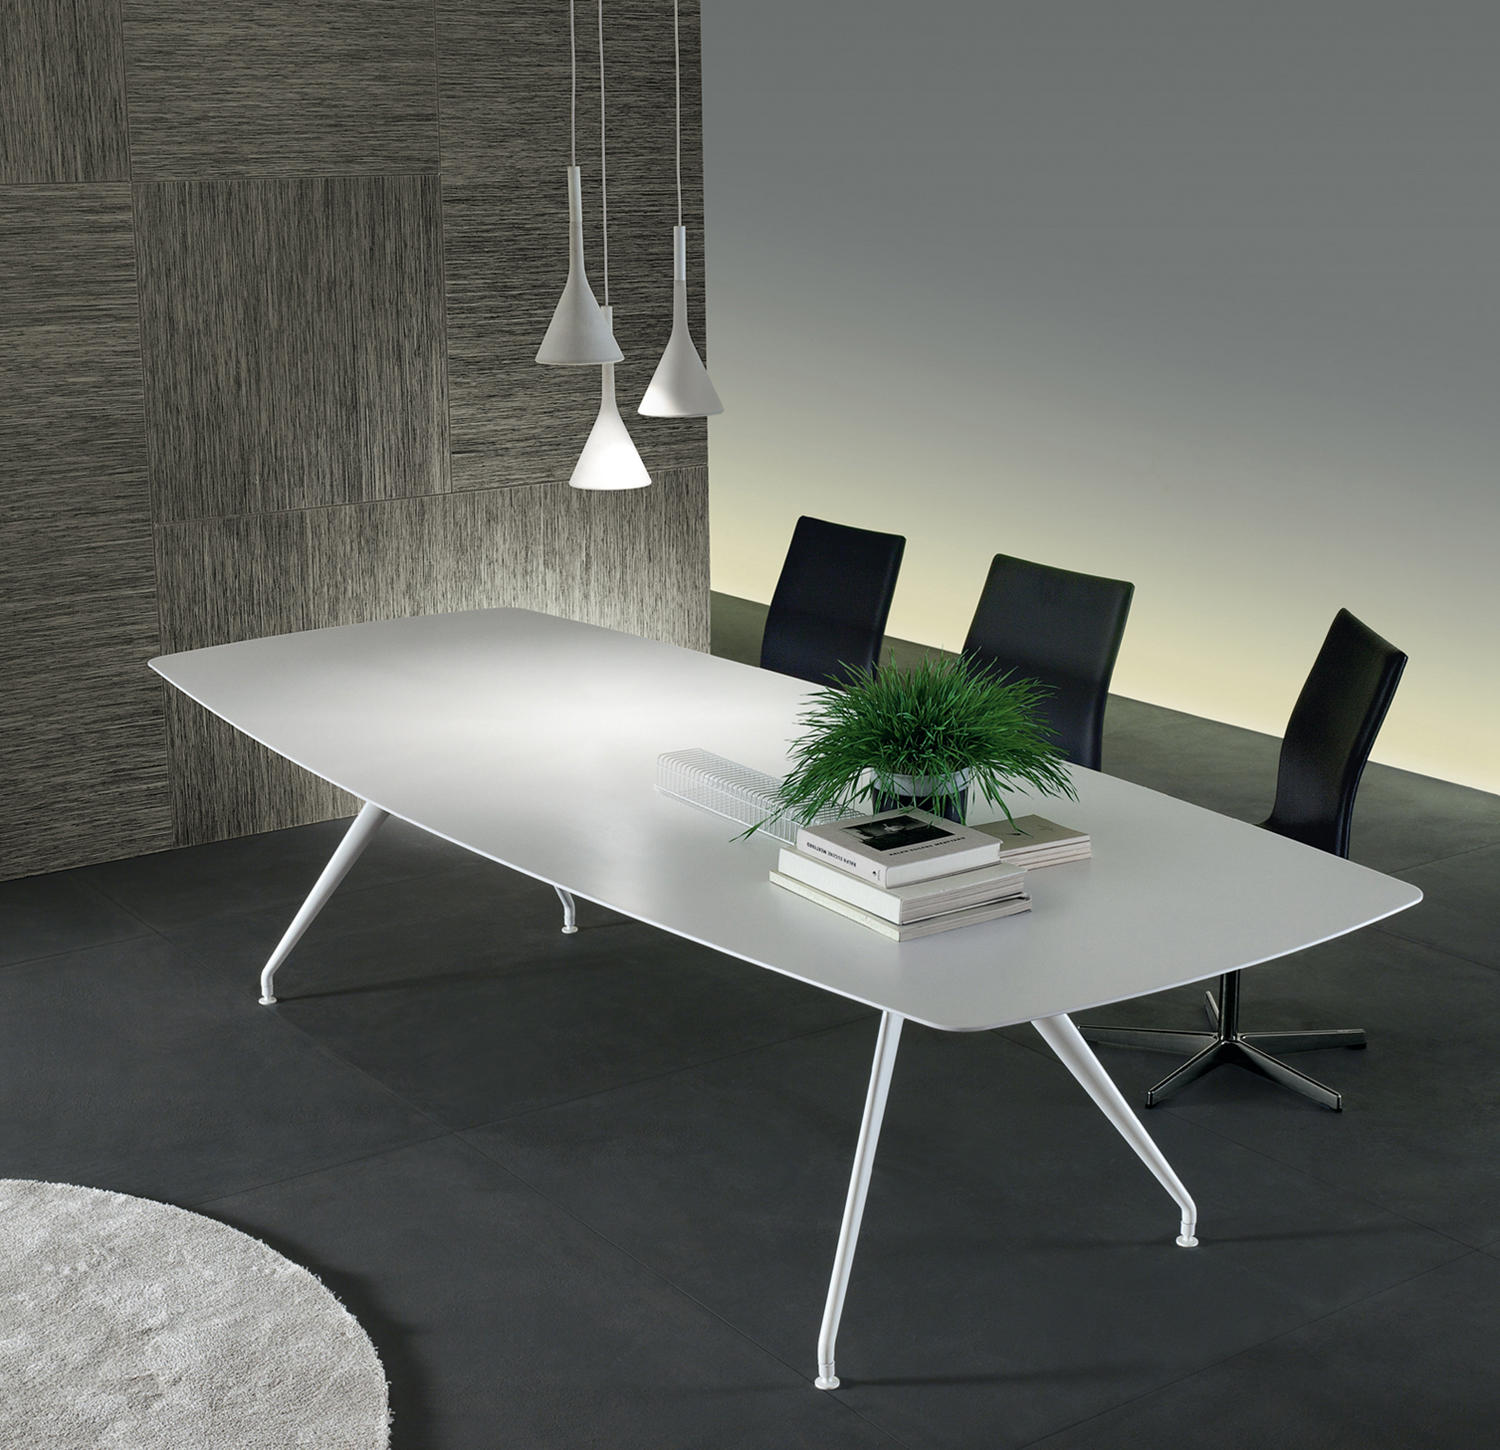 DINING TABLES WITH TOP IN ACRYLIC High quality designer DINING